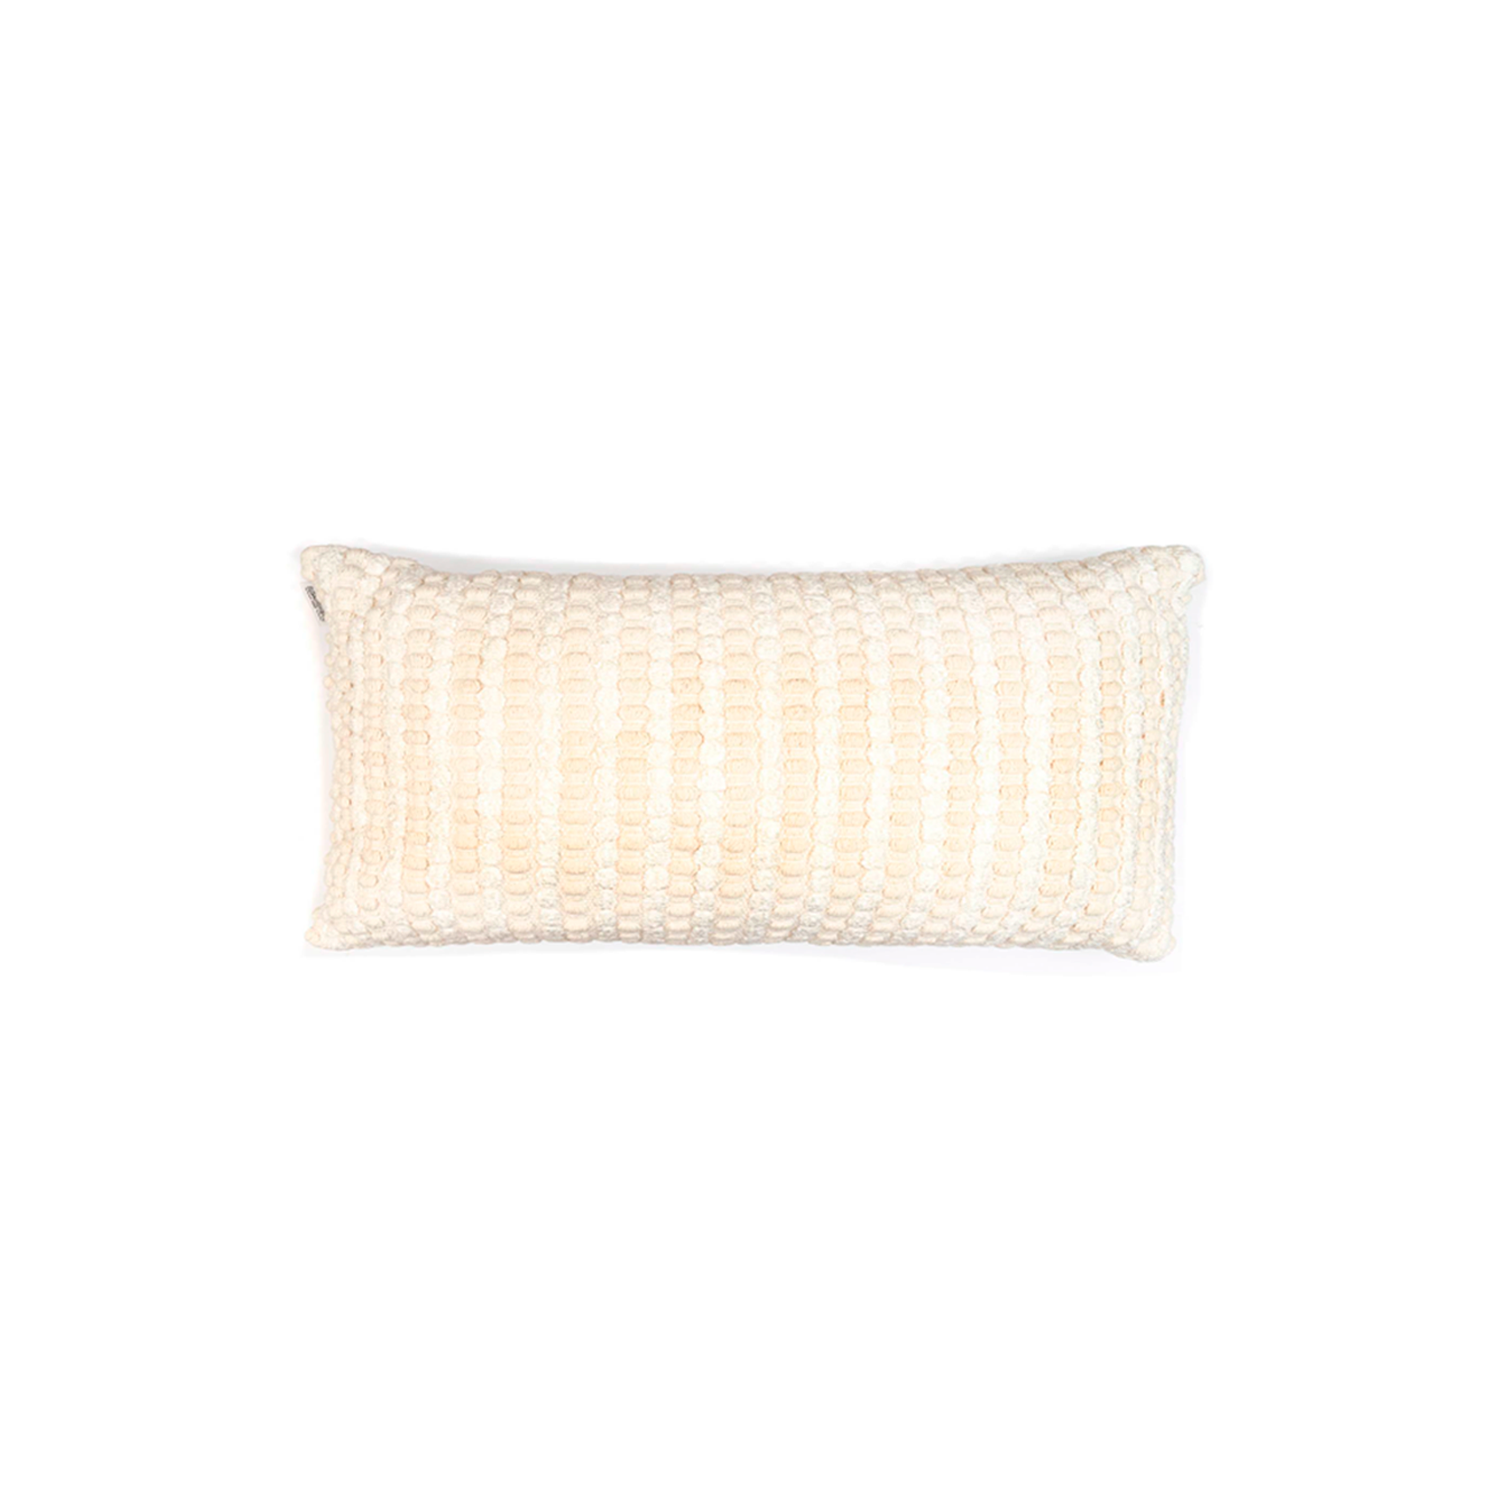 Estrela Branca Cotton Cushion Small - The Flame Sustainable Collection is made from a selection of organic cotton fibres, eco-friendly, hand-woven or elaborated using traditional hand-loom techniques. Carefully knitted within a trained community of women that found in their craft a way to provide their families.  This collection combines Elisa Atheniense mission for responsible sourcing and manufacturing. Each piece is meticulously hand-loom by artisans who practised methods with age-old techniques. With a minimal electricity impact, each item crafted is therefore unique and exclusive. Weavers and artisans are the ultimate lifelines of Elisa Atheniense Home Products.  The hand woven cotton, washable cushion cover is made in Brazil and the inner cushion is made in the UK.   | Matter of Stuff